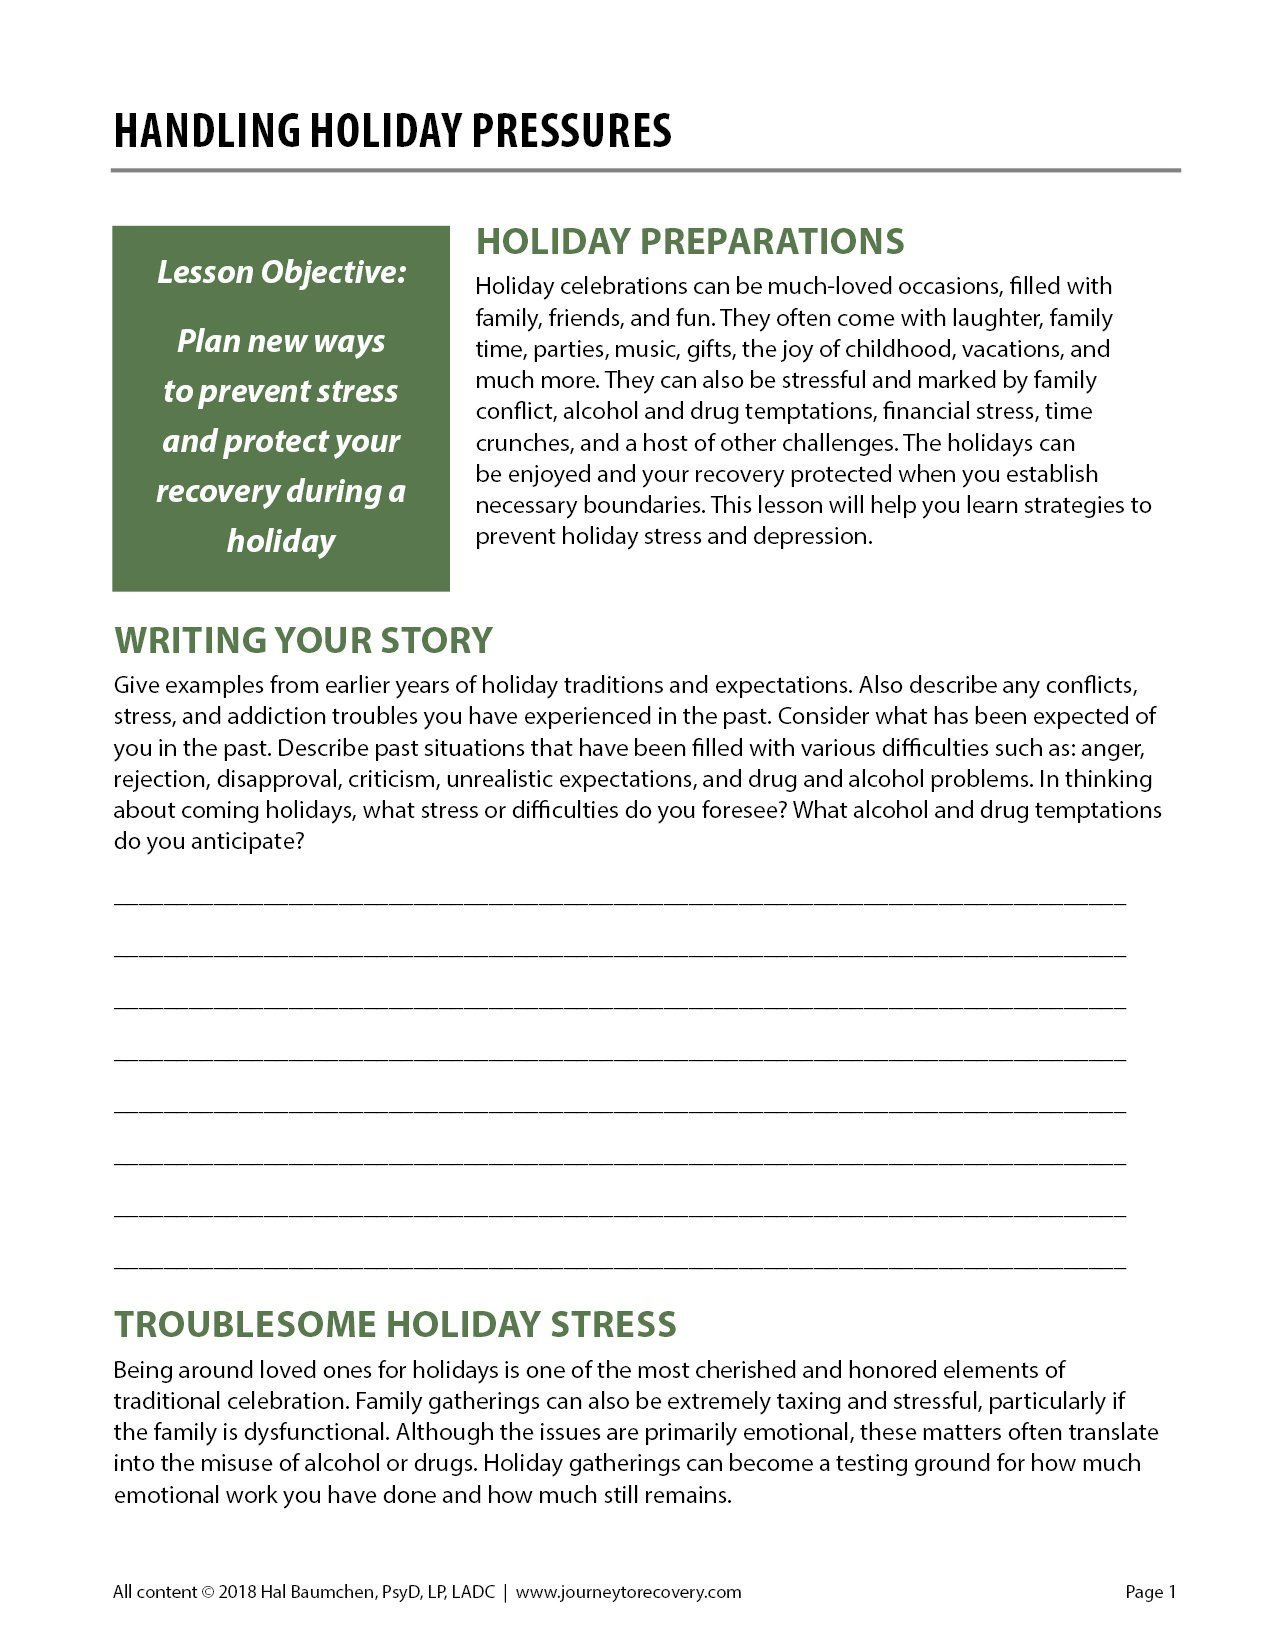 Holidays And Recovery Worksheet  Yooob Throughout Coping With The Holidays Worksheet